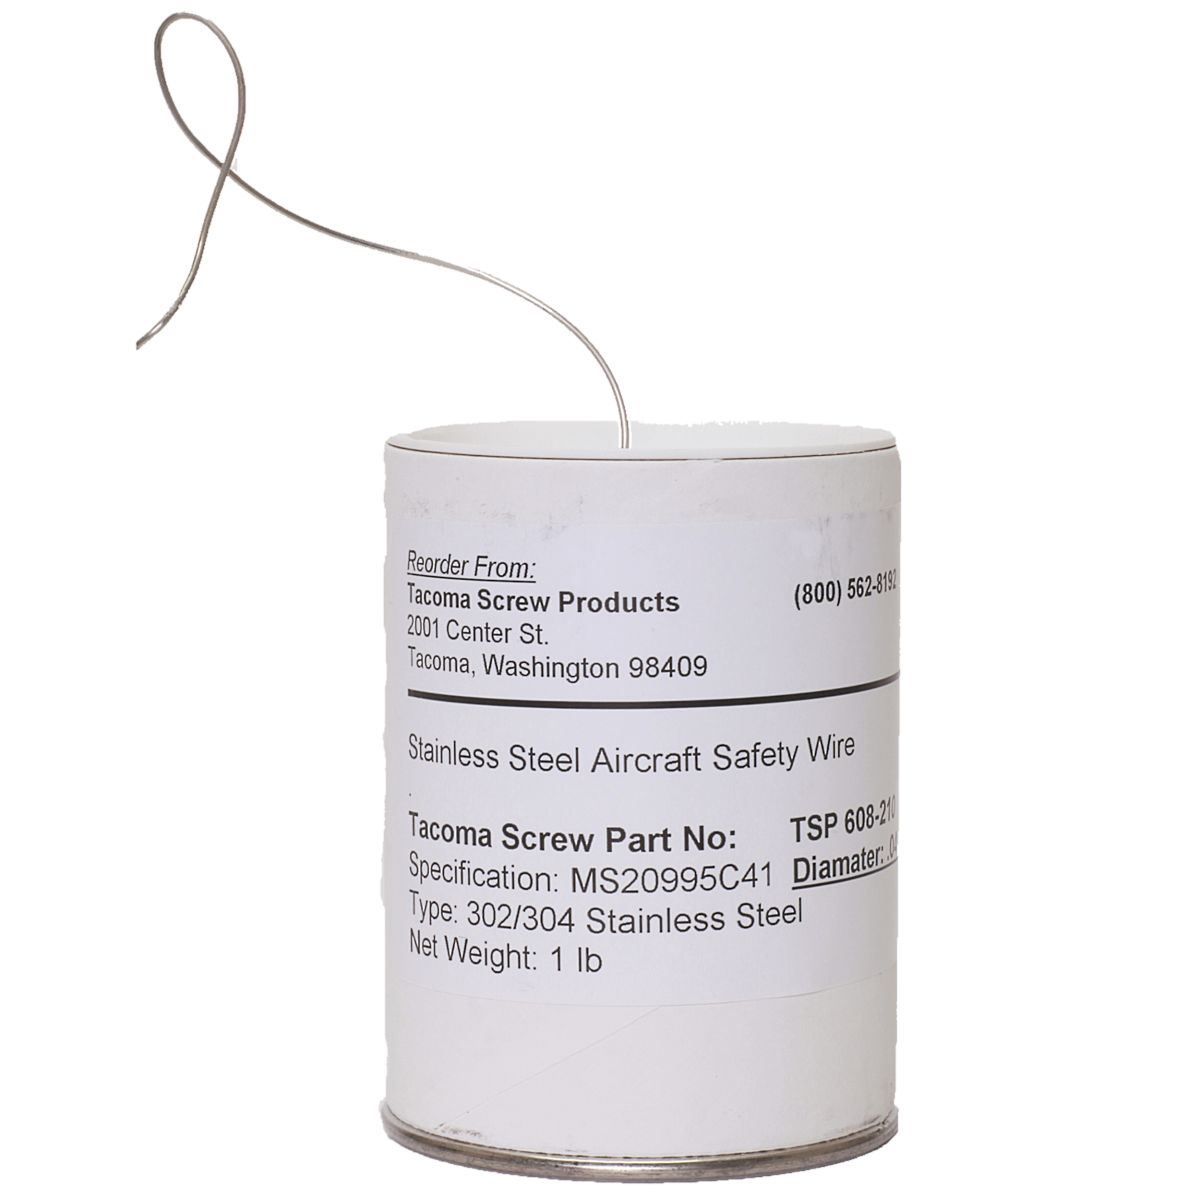 """.032"""" x 360' Stainless Steel Aircraft Safety Lock Wire"""